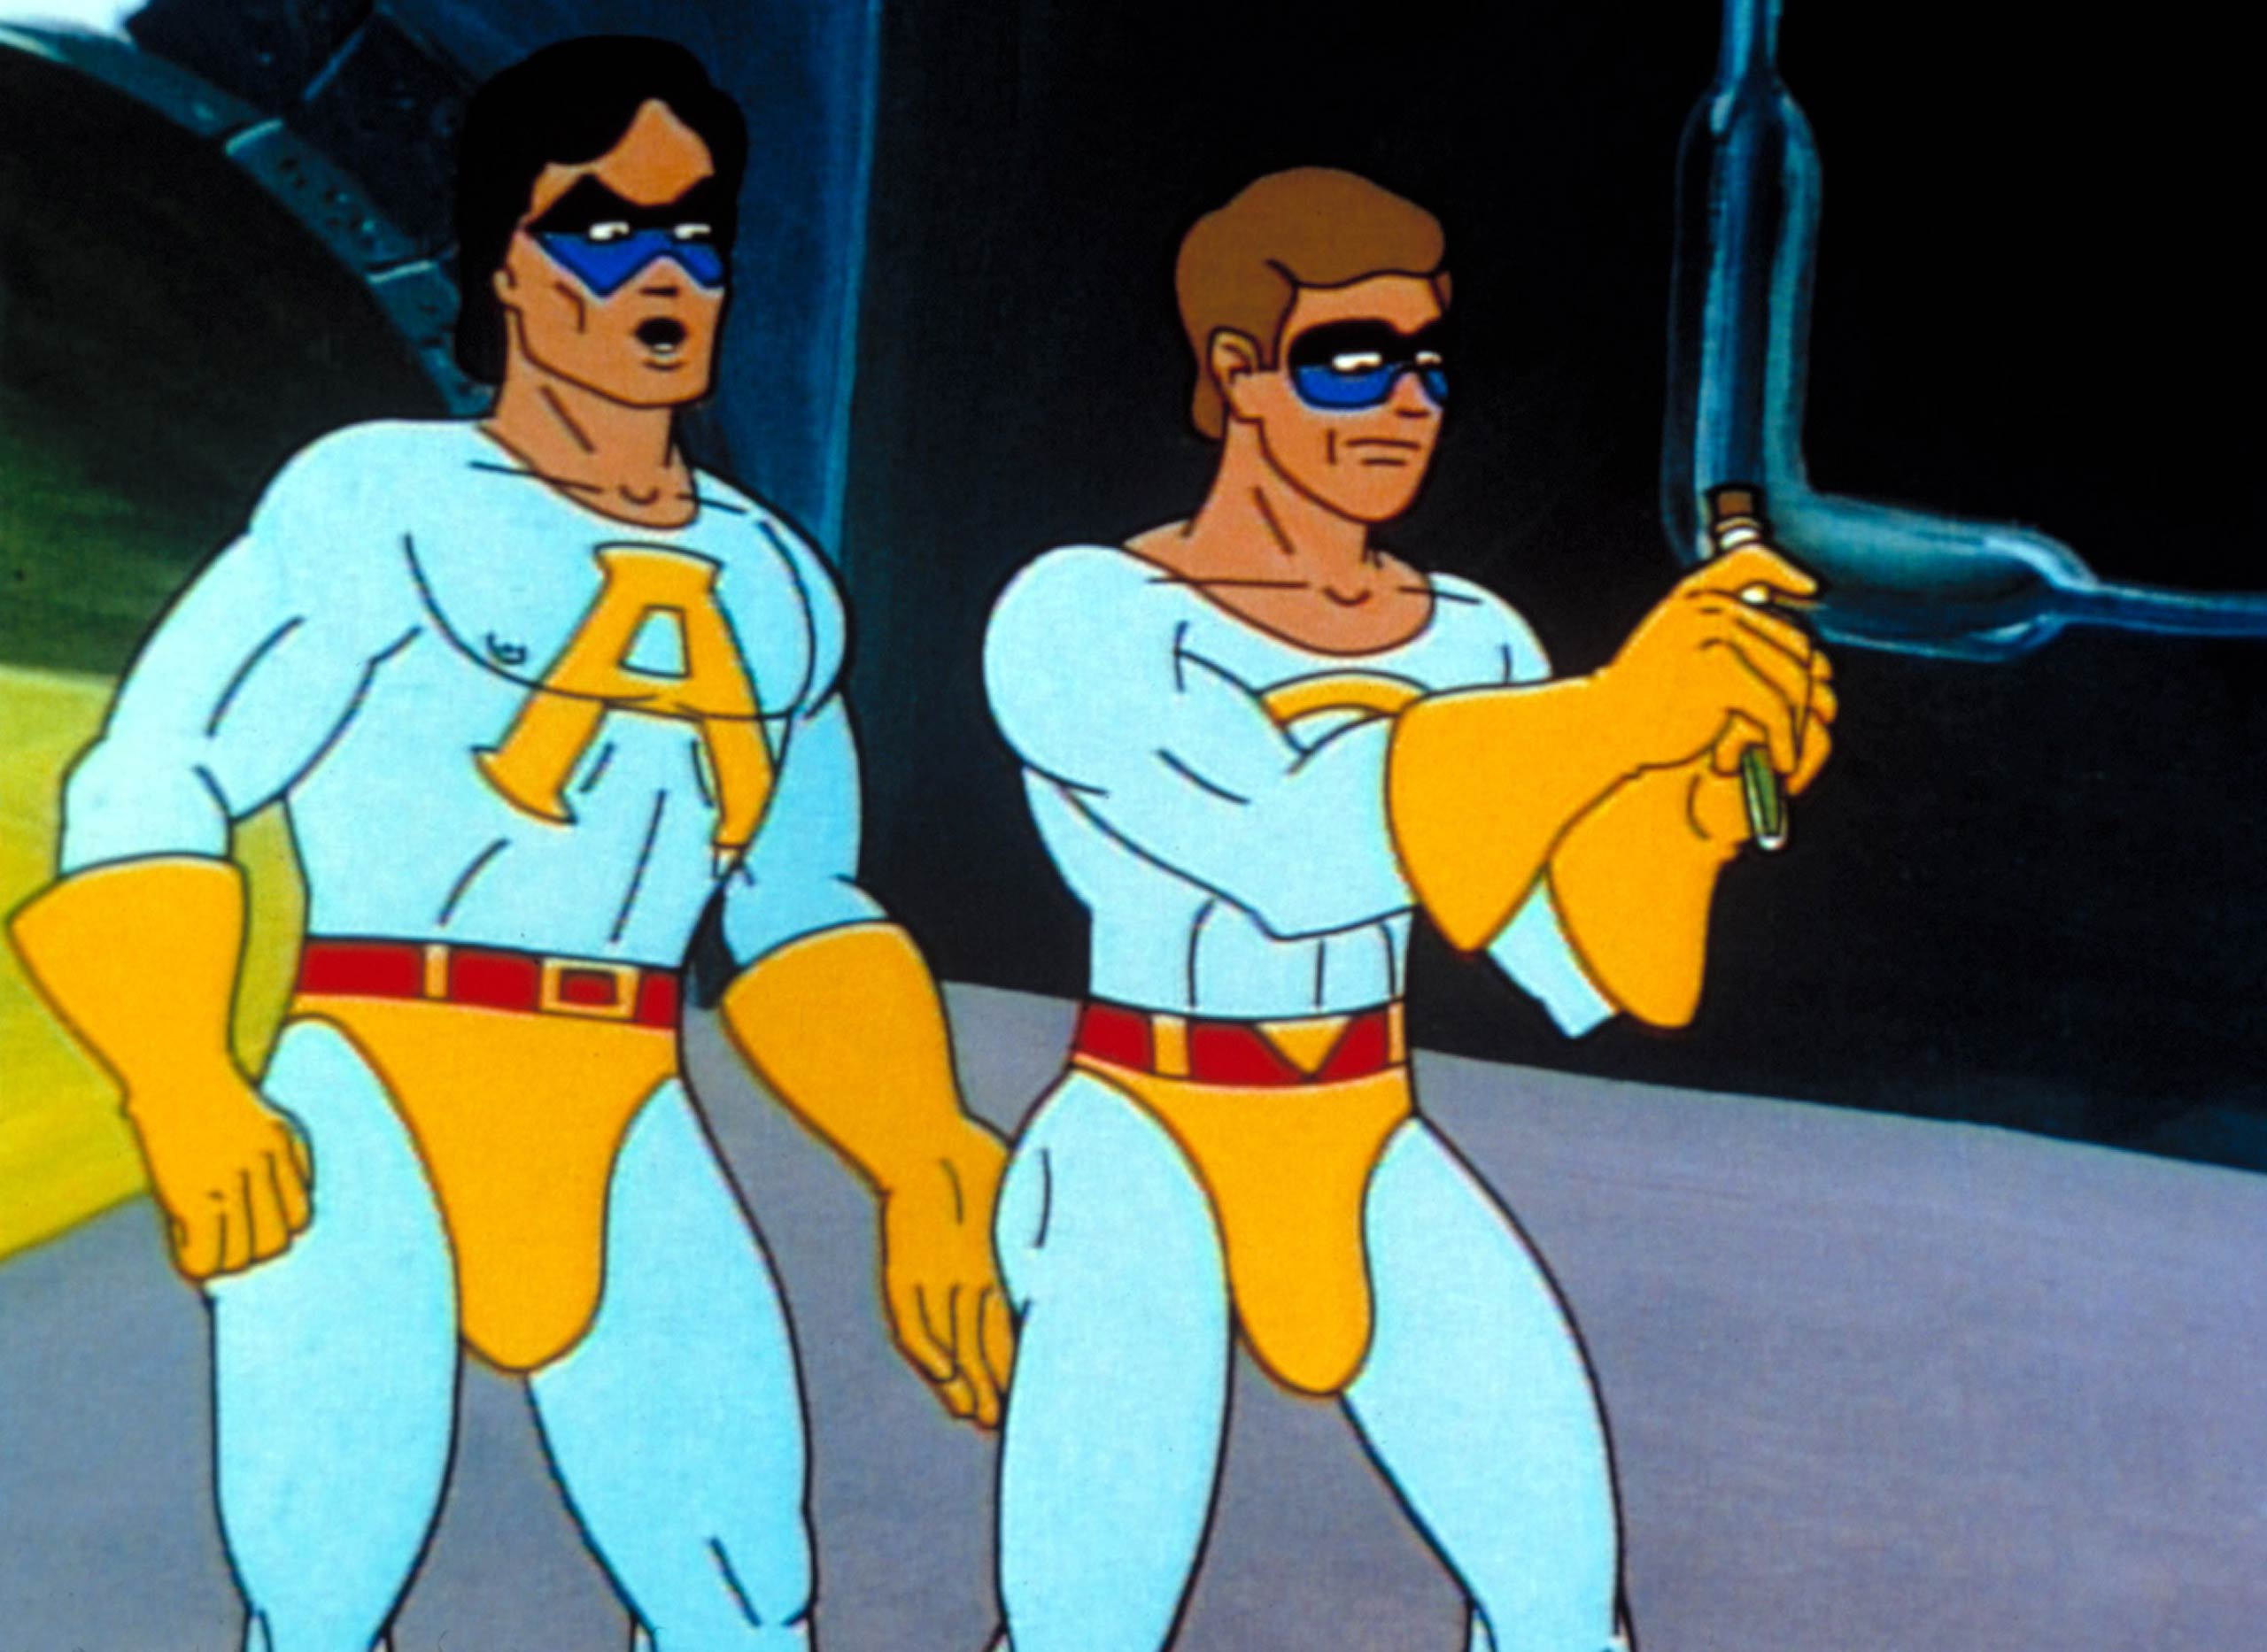 <strong><i>Saturday Night Live</i> - Ace, The Ambiguously Gay Duo</strong> (pictured left)